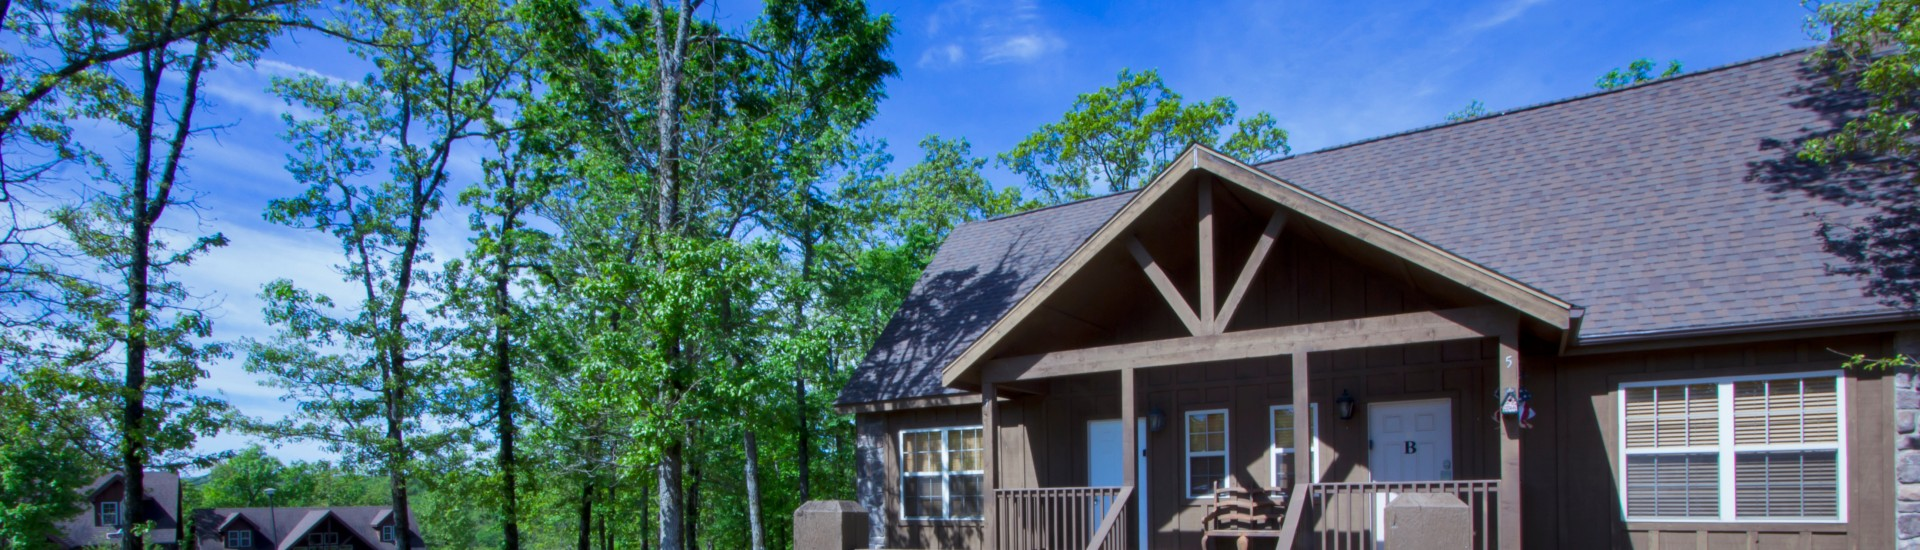 1 Bedroom Cabins In Branson Branson Mo Branson Travel Office